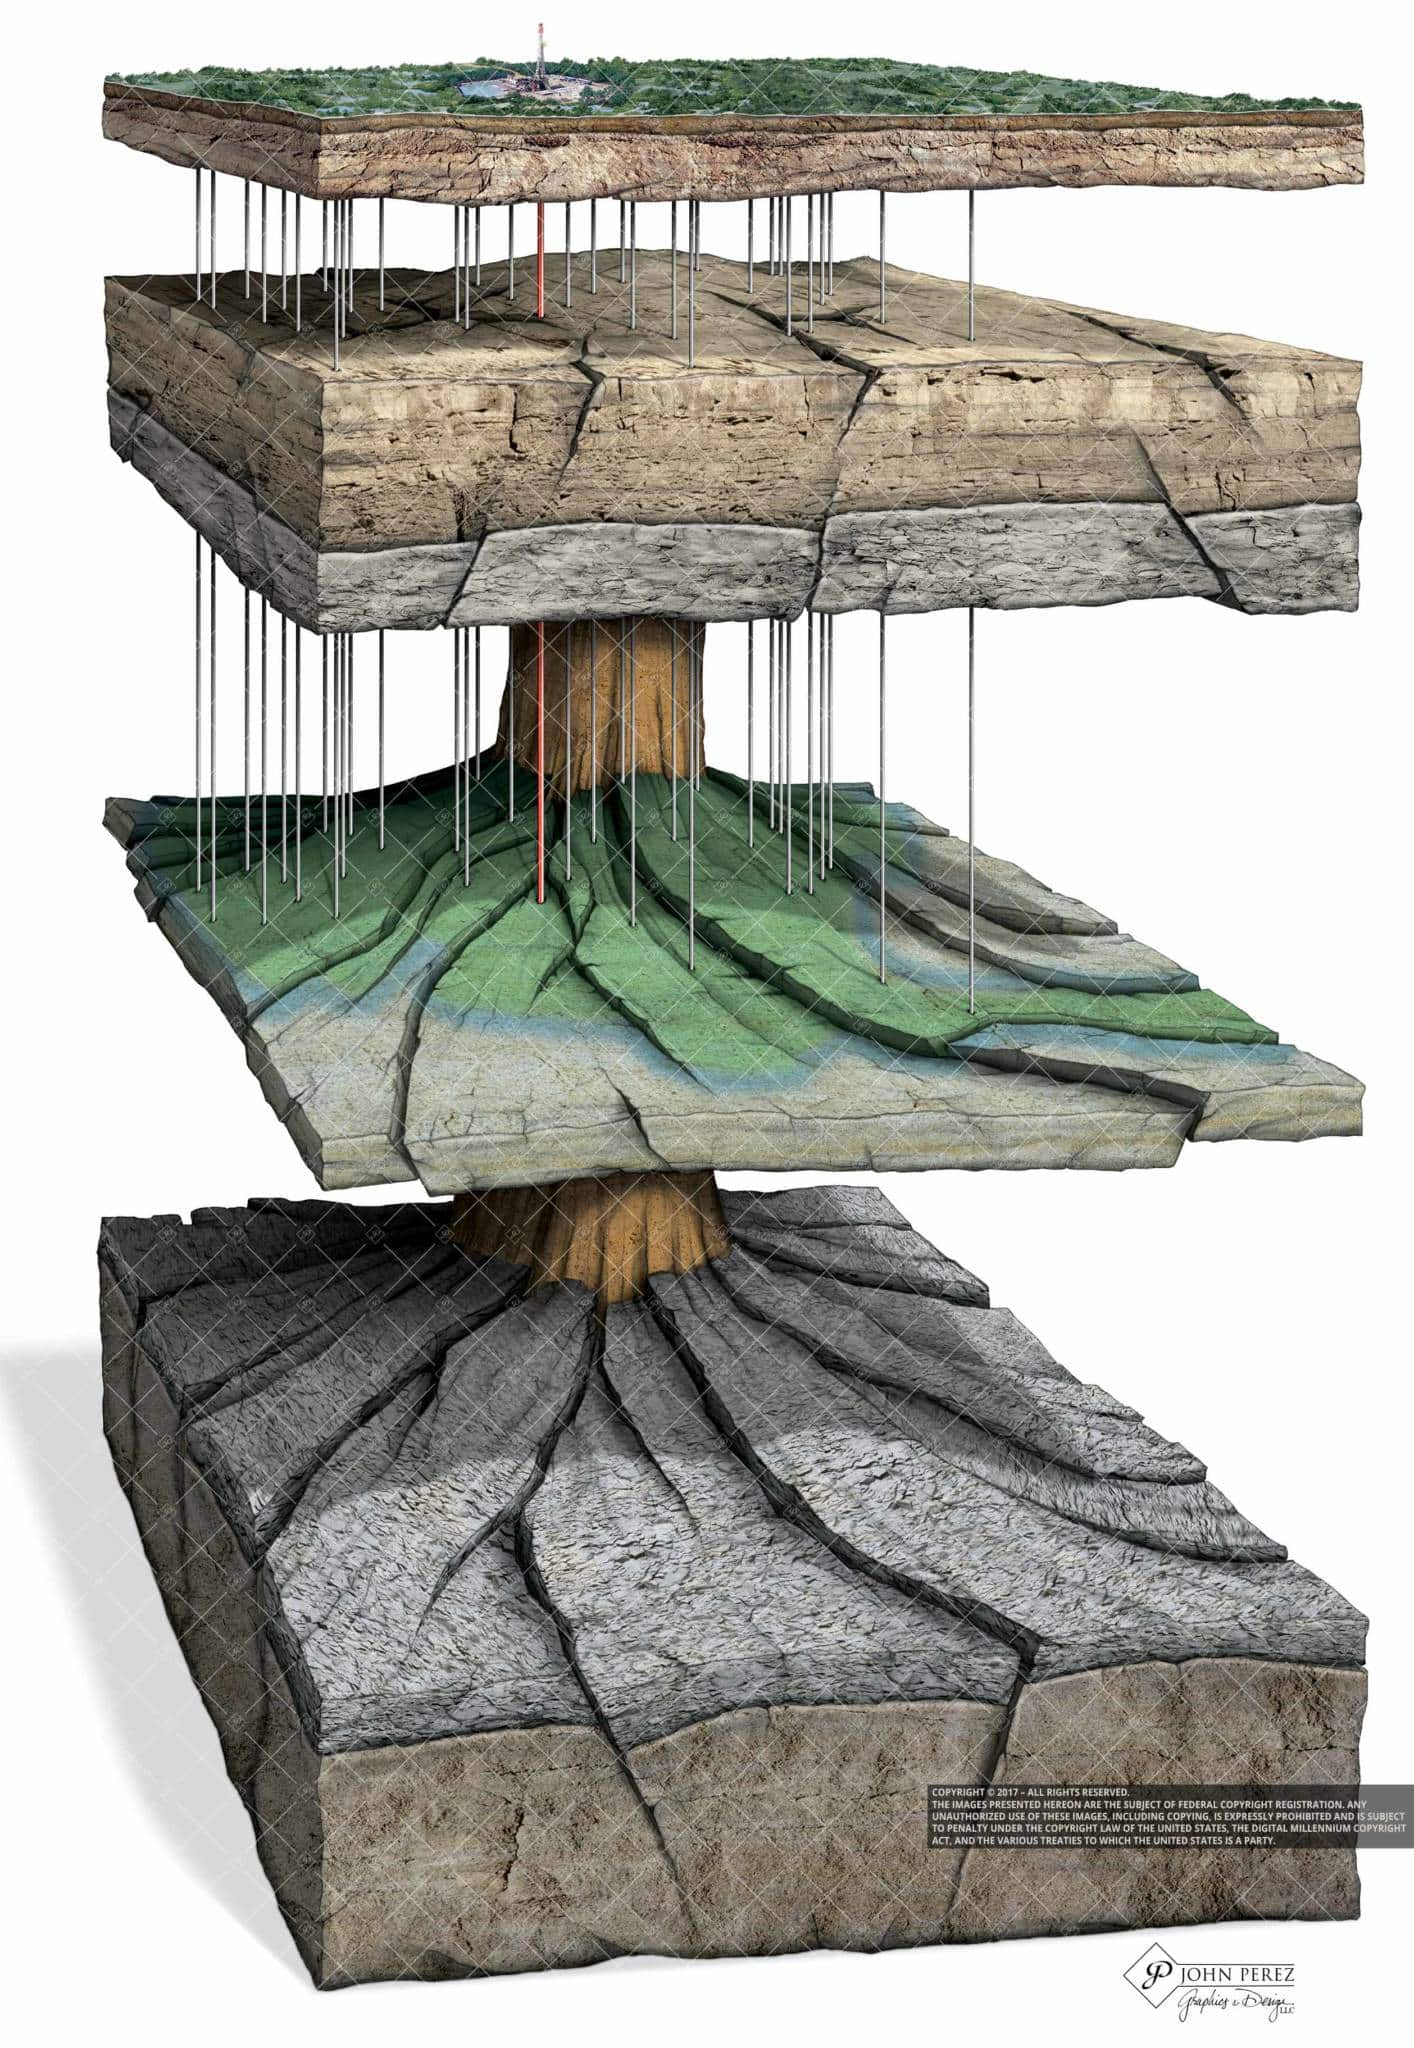 Faulted Formation Juxta Posed Against Salt Dome Illustration, john perez graphics, oil gas illustration, oil gas schematic